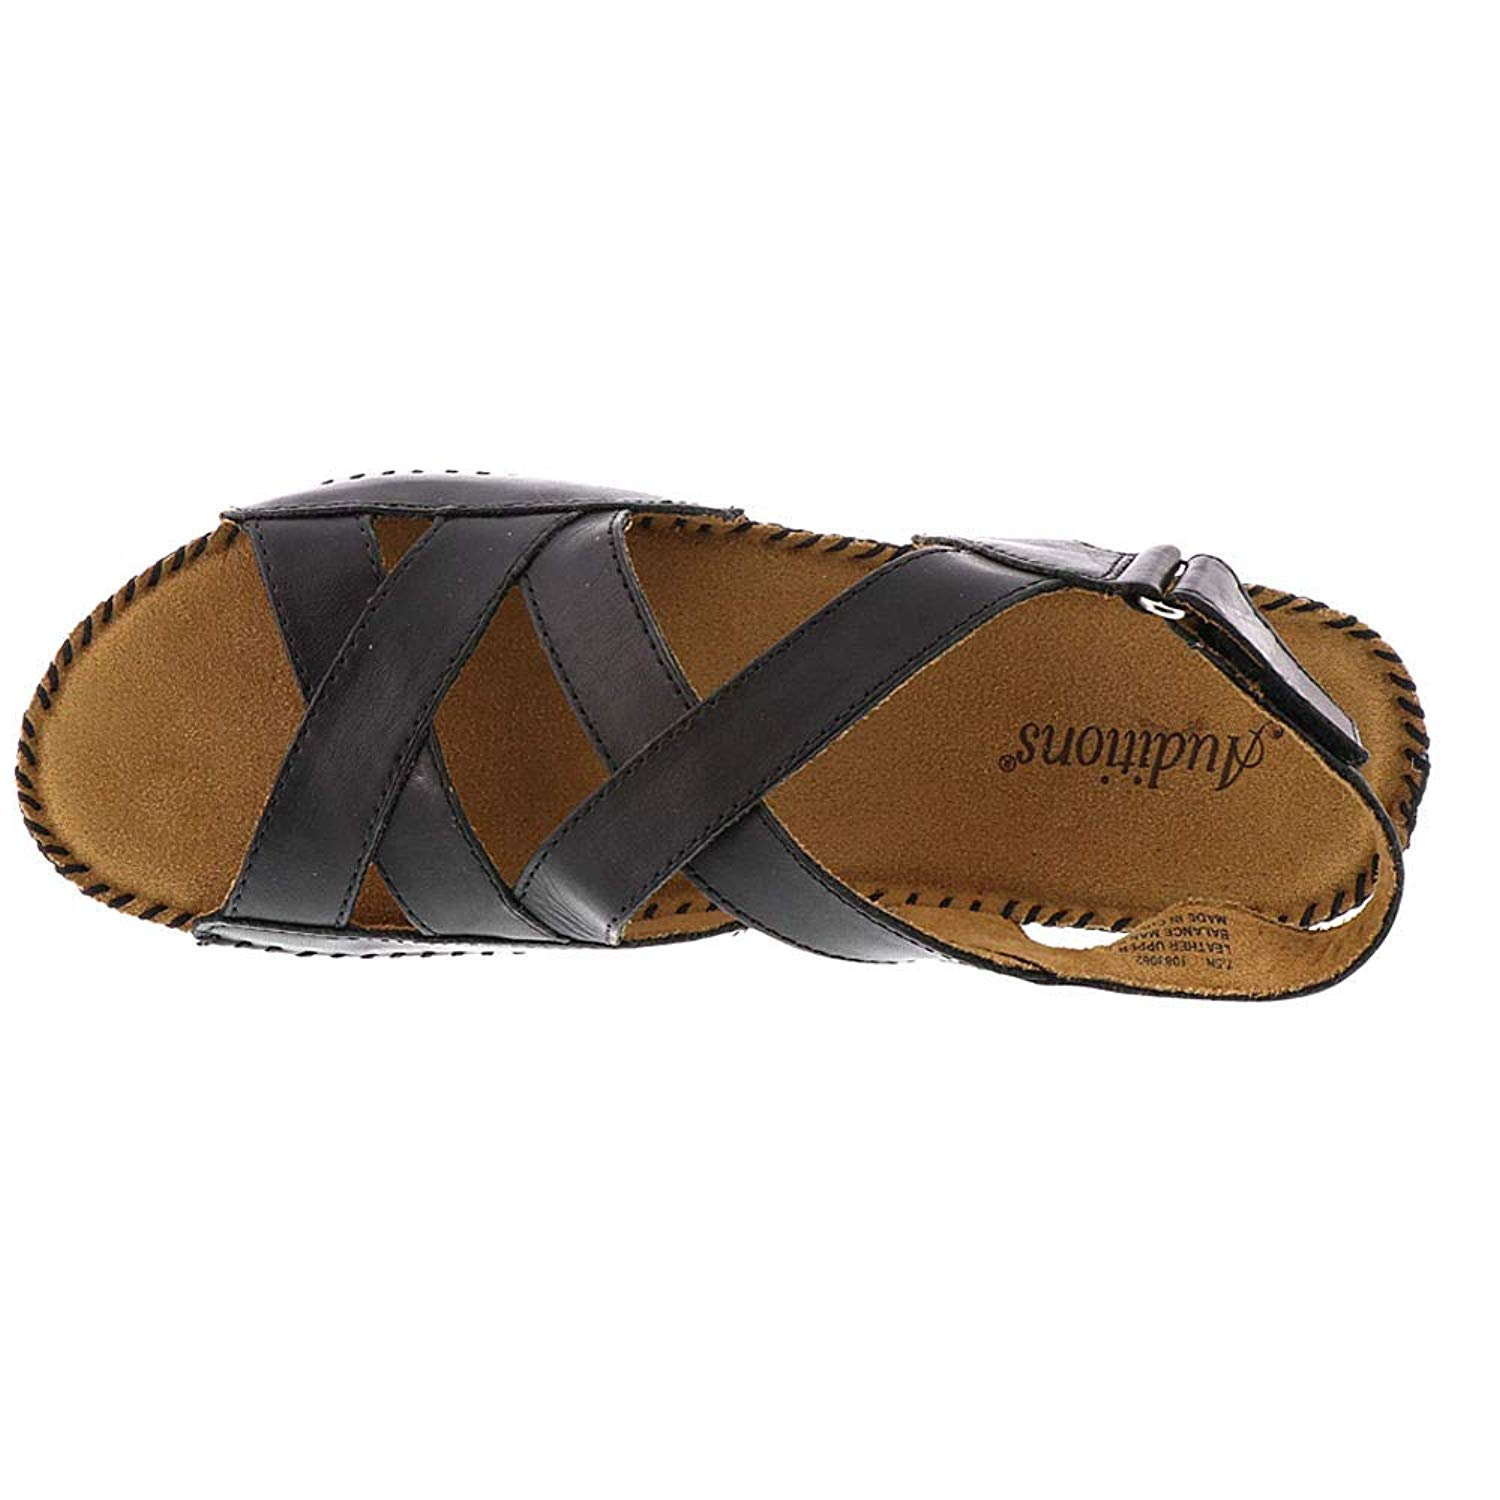 Madrid Open Sandals Womens Auditions Casual Strappy Toe Leather Tx6nq58U